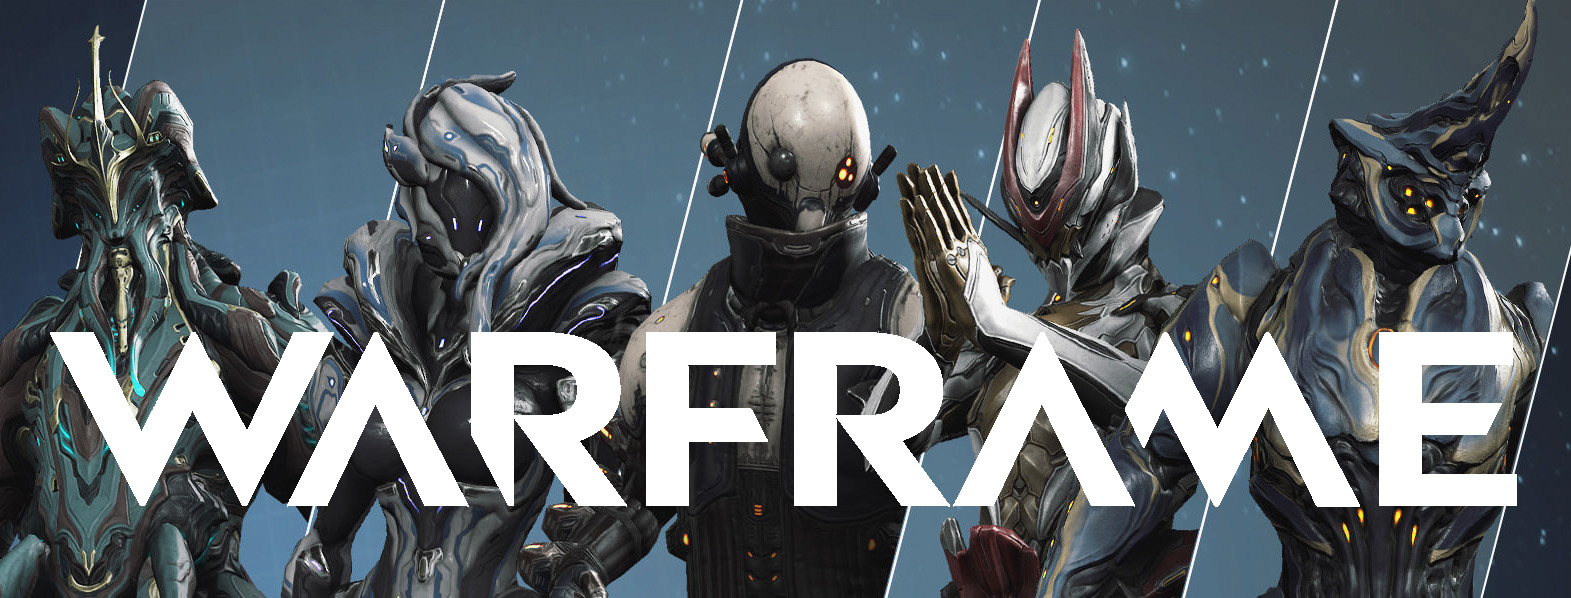 Top 10 Reasons Why Warframe is One of the Best Games in Recent Years